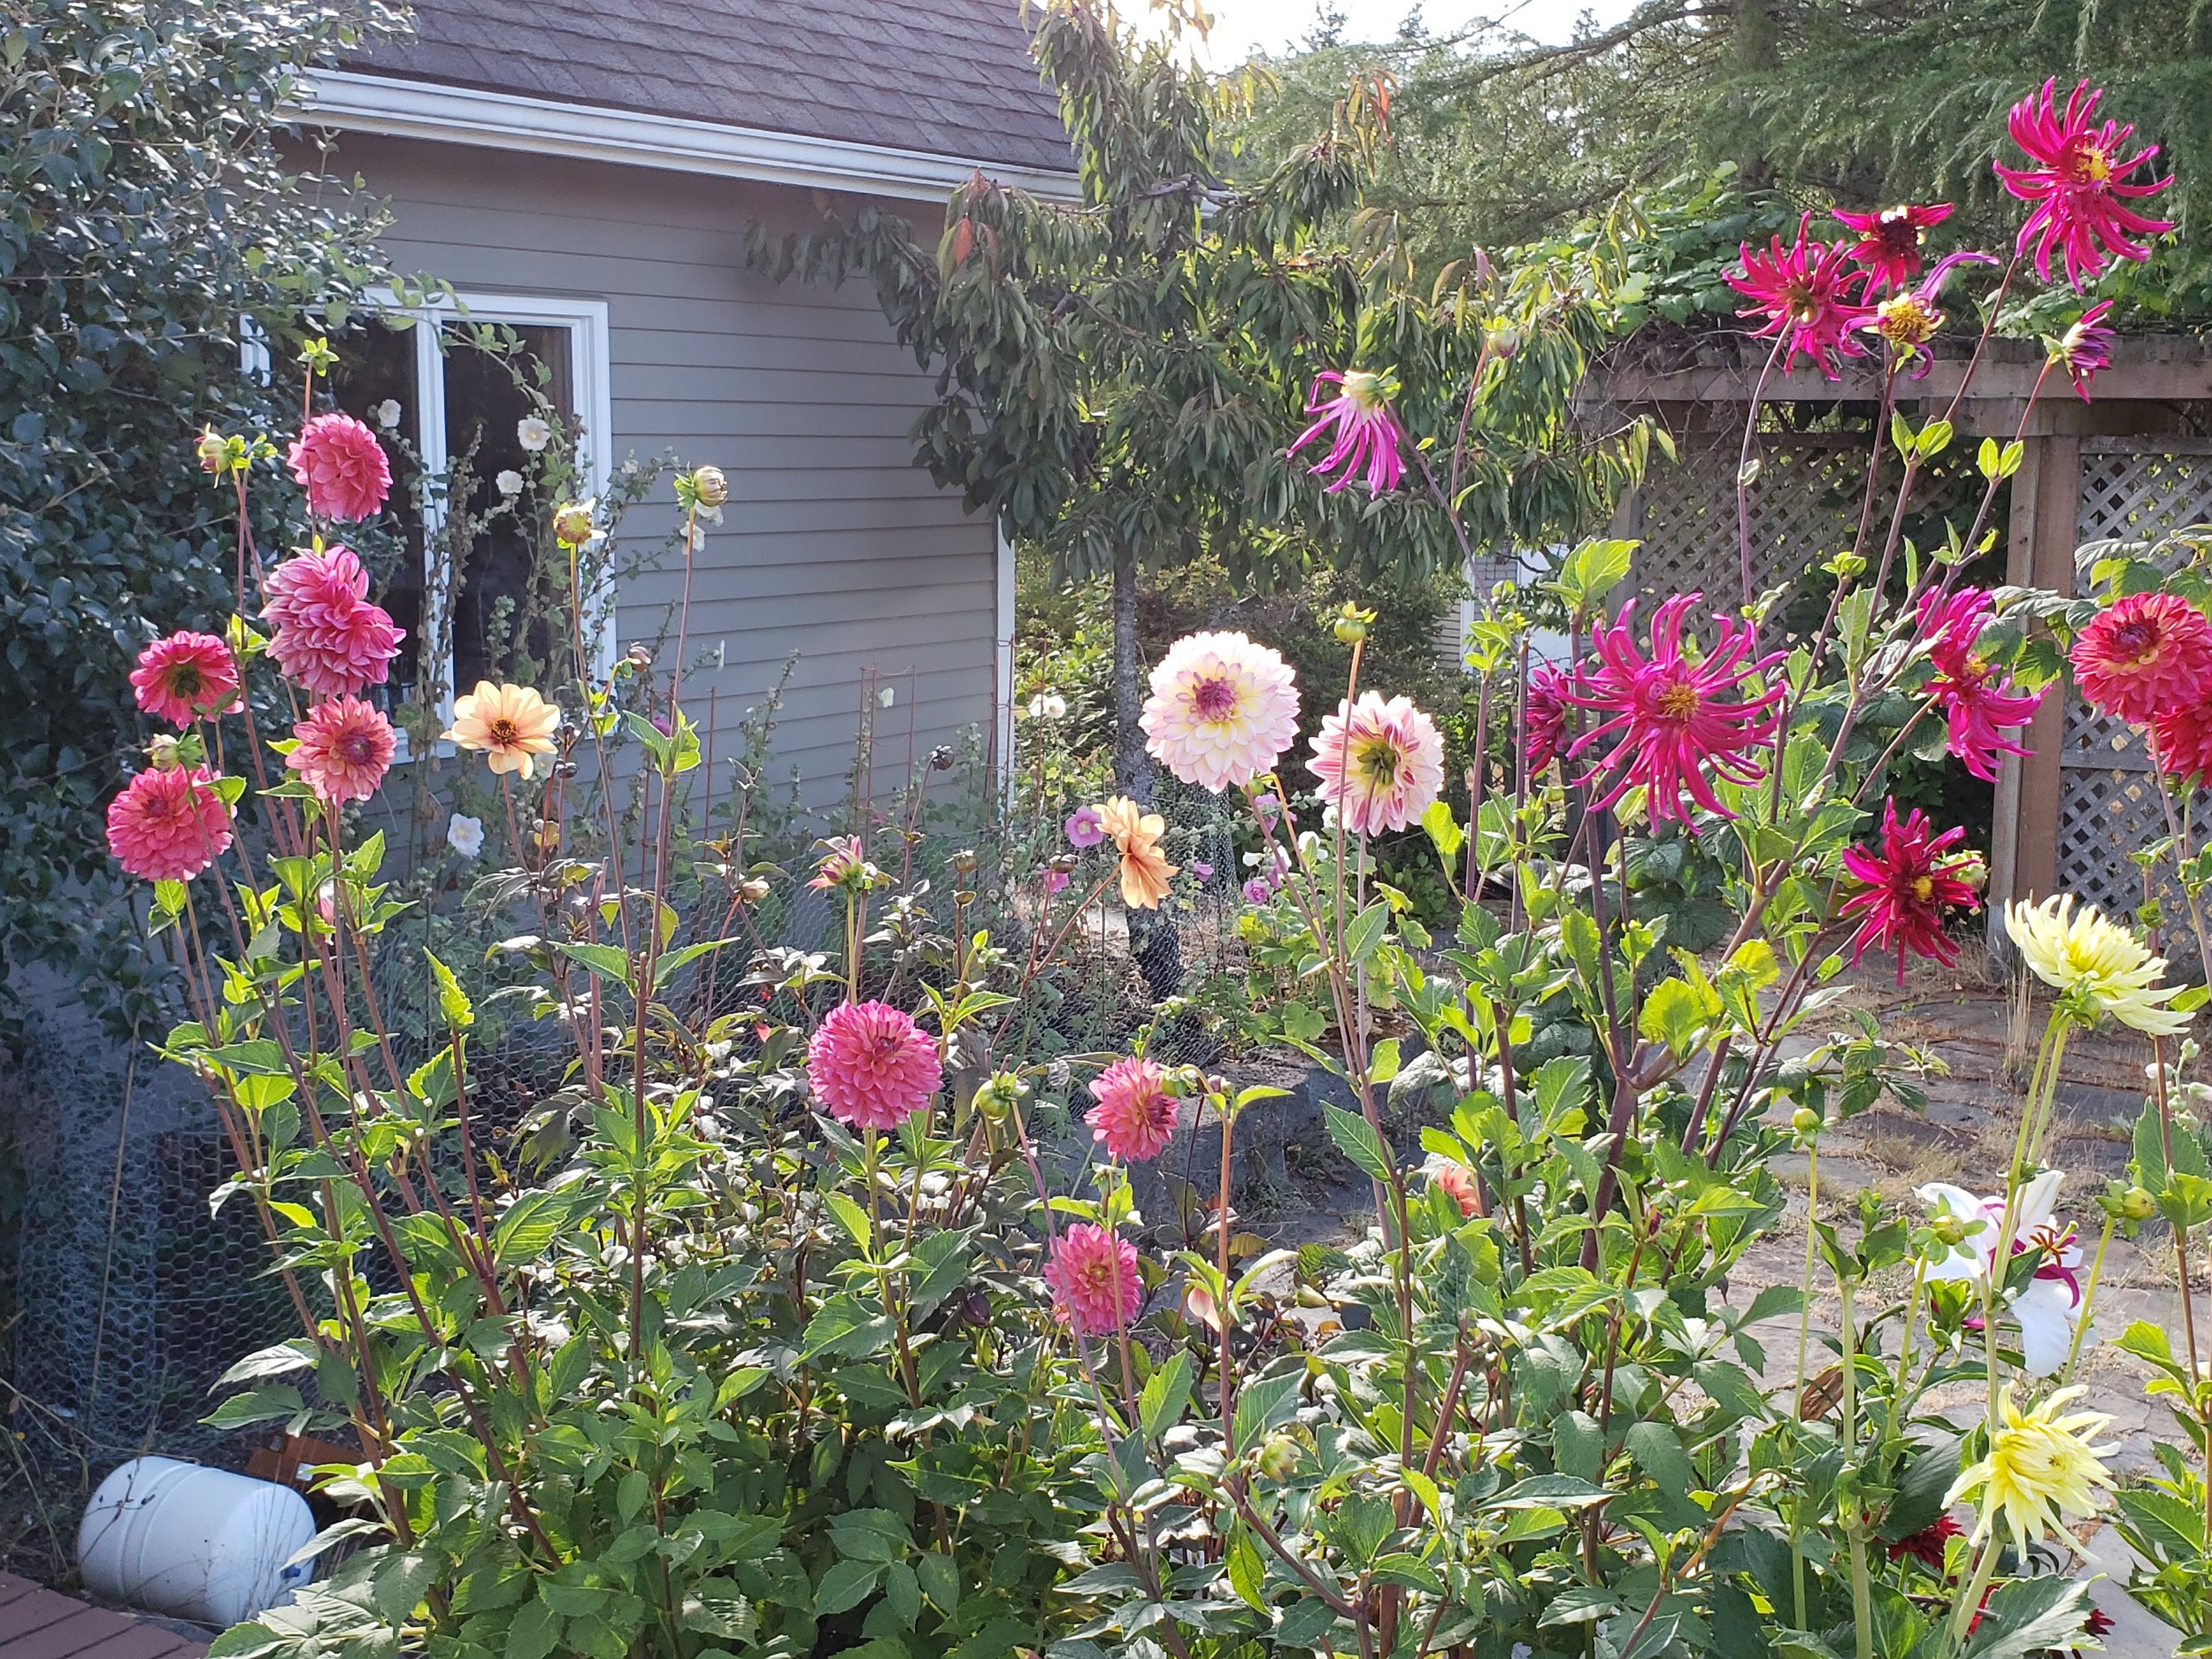 A plethora of dahlias -